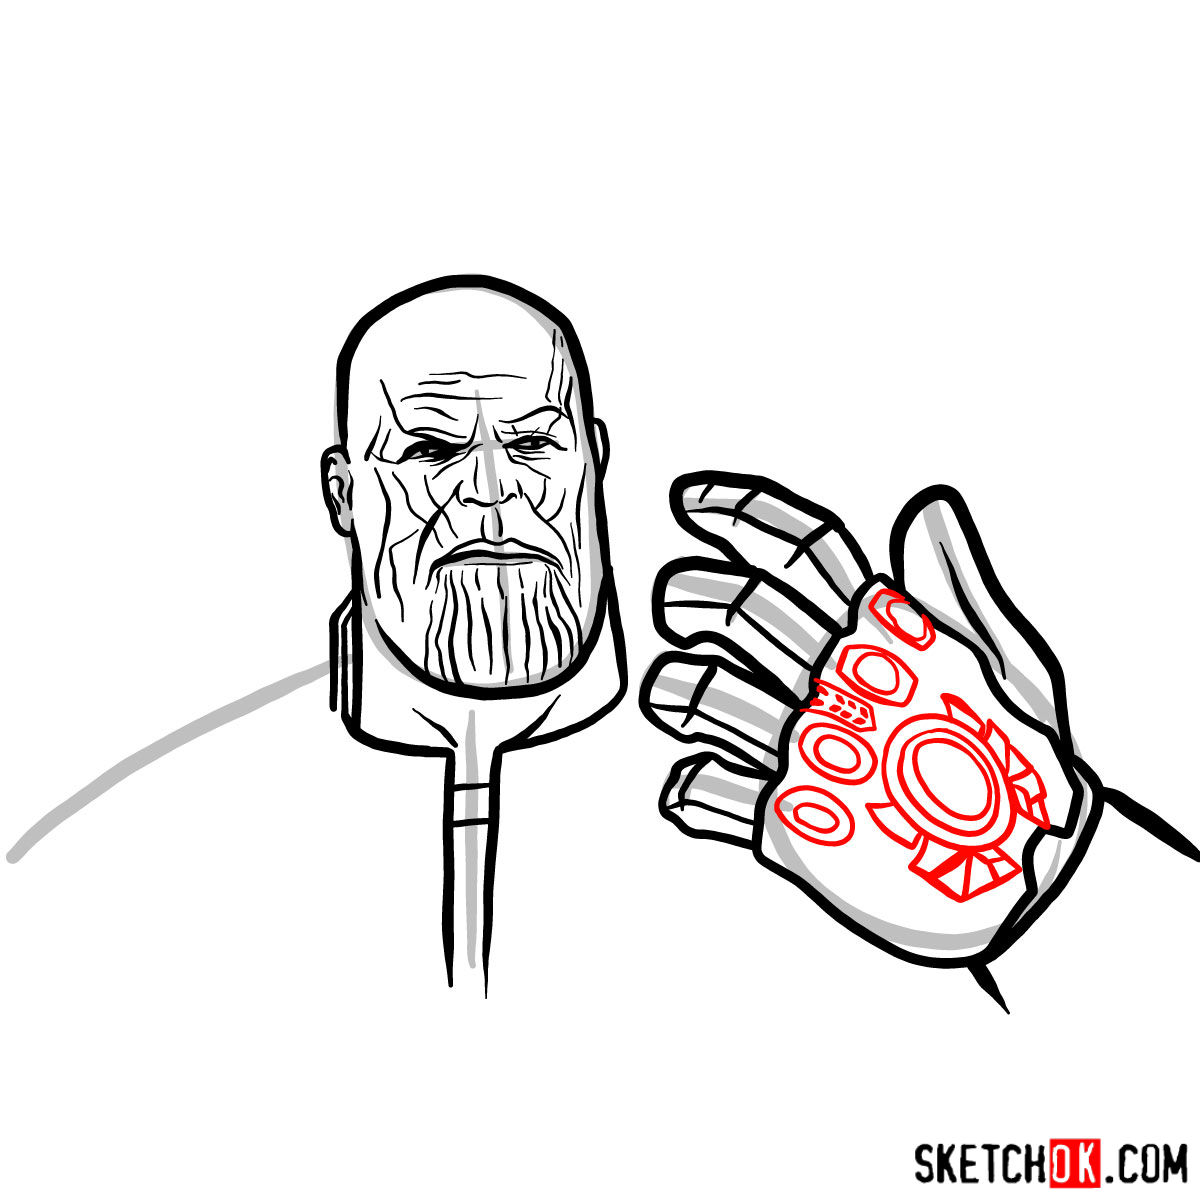 1200x1200 How To Draw Thanos From The Avengers Infinity War Film